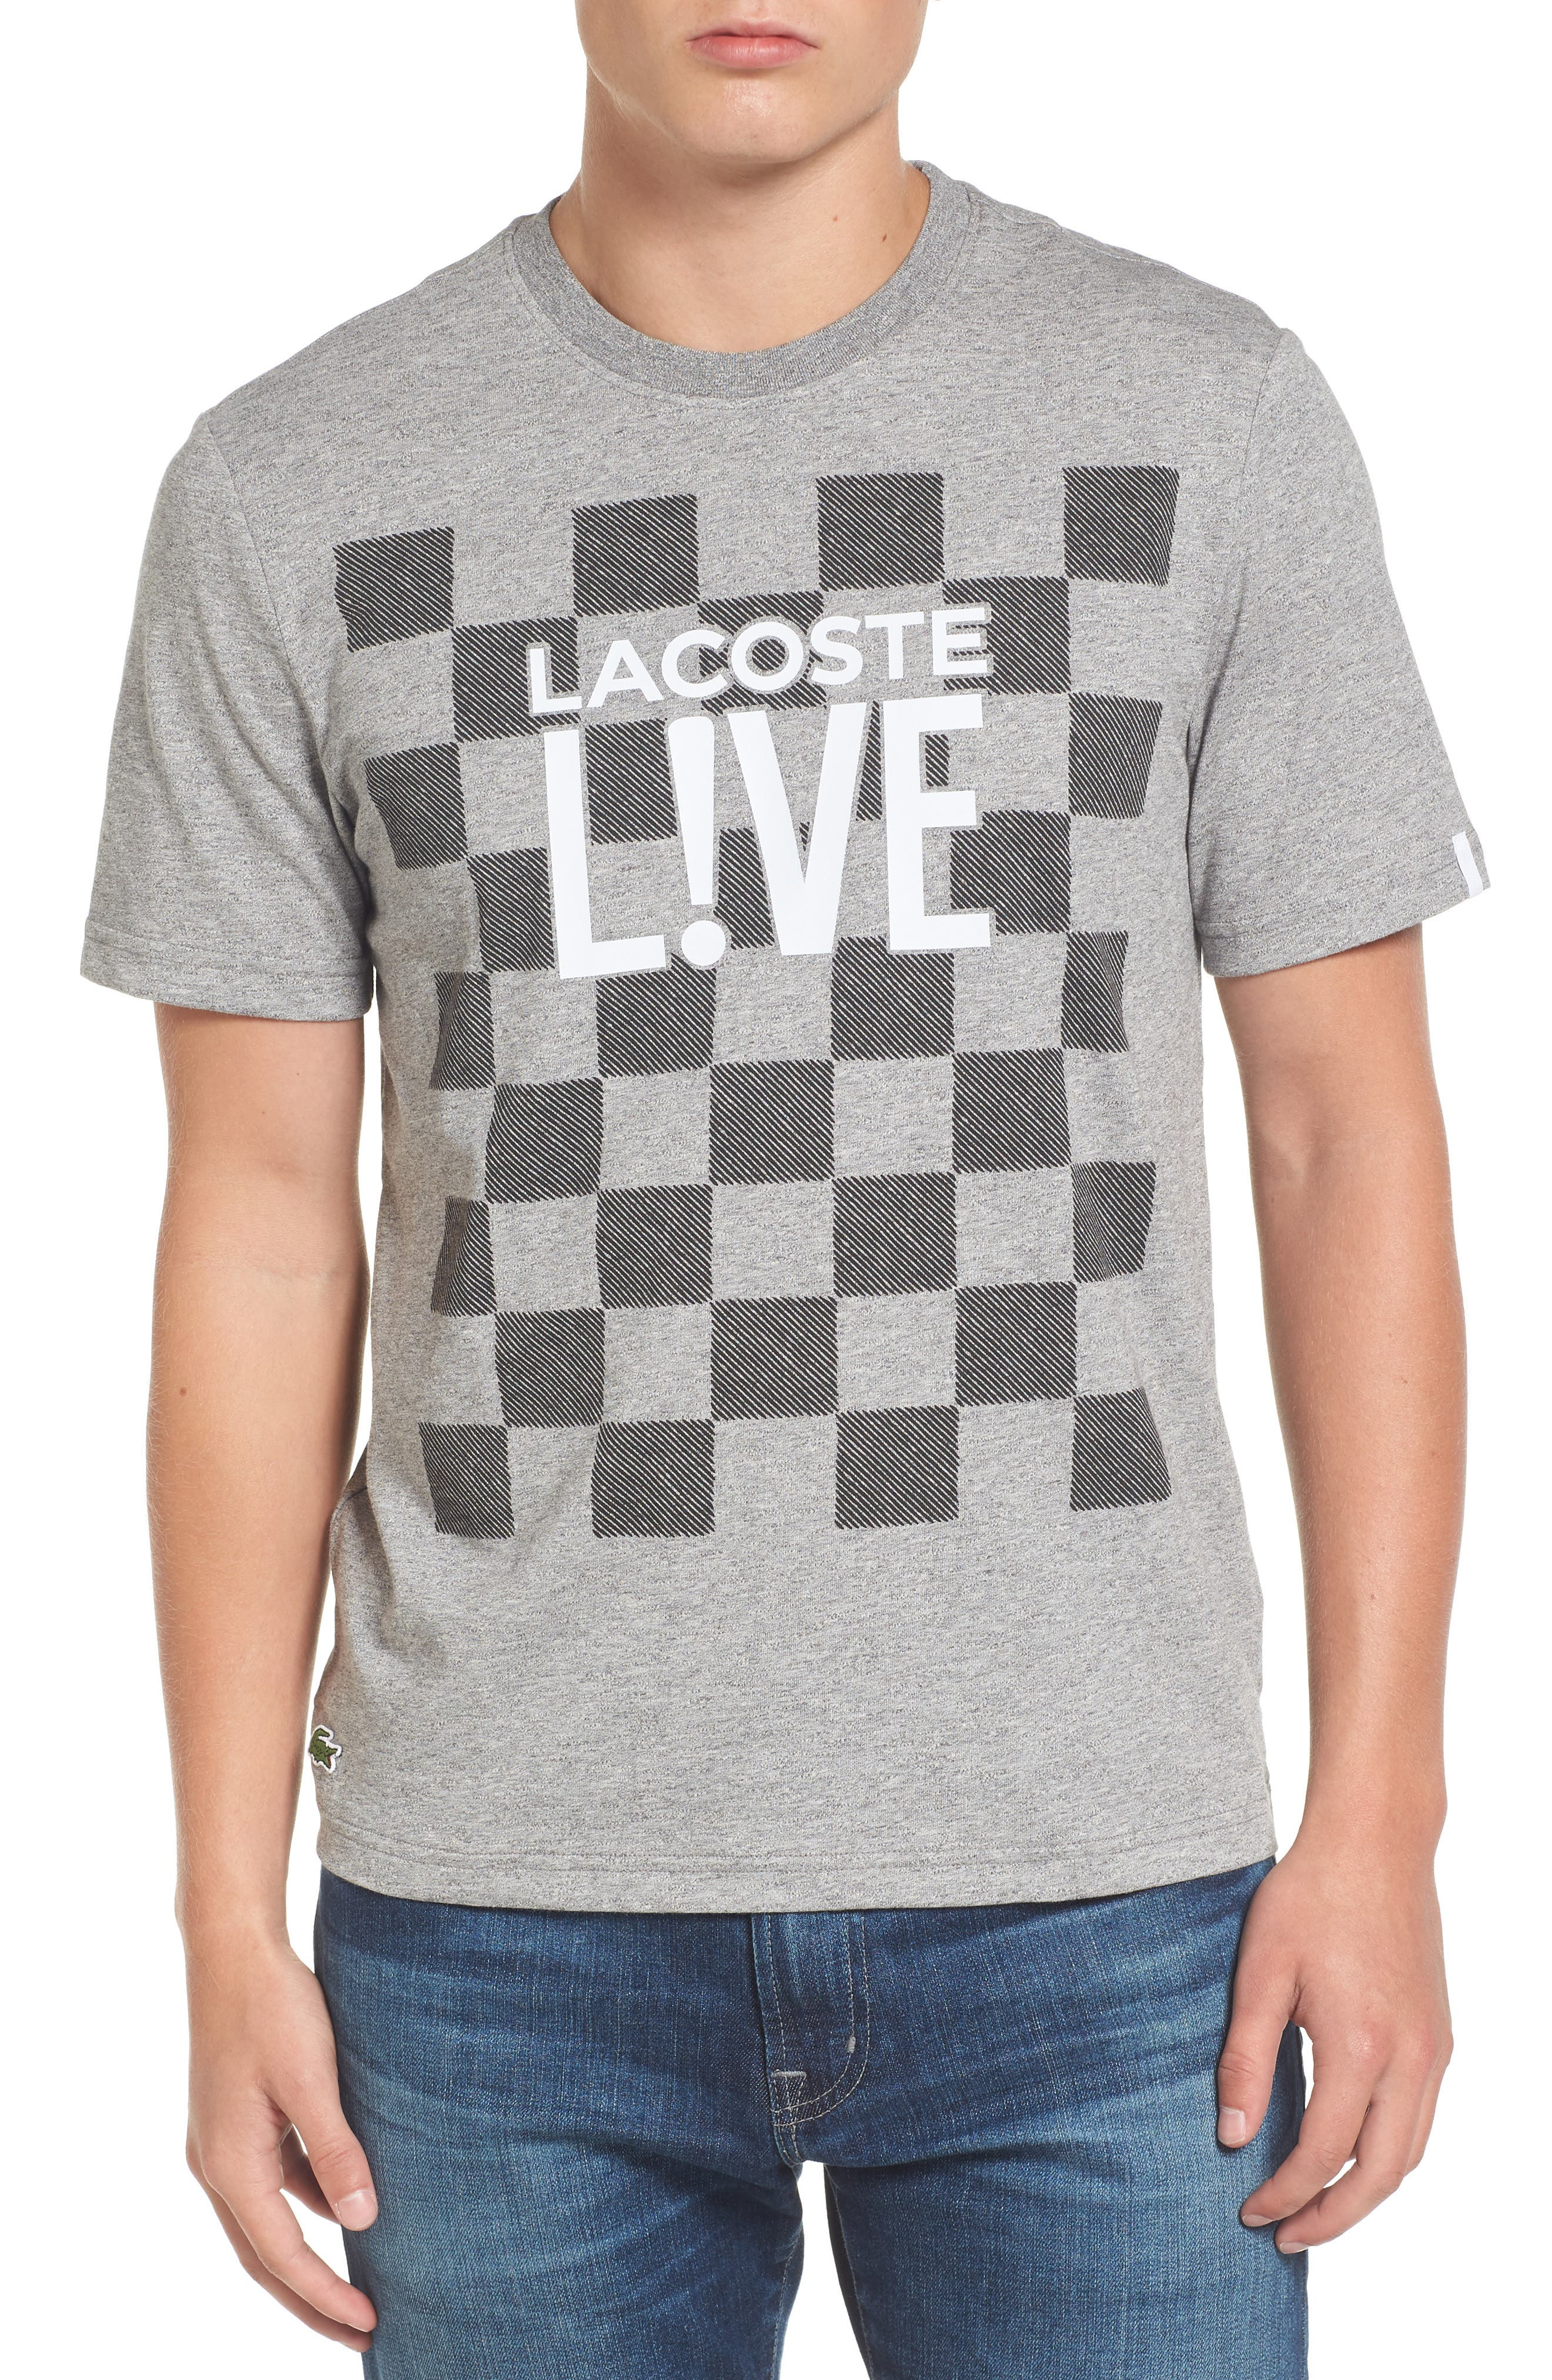 Main Image - Lacoste Check Graphic T-Shirt